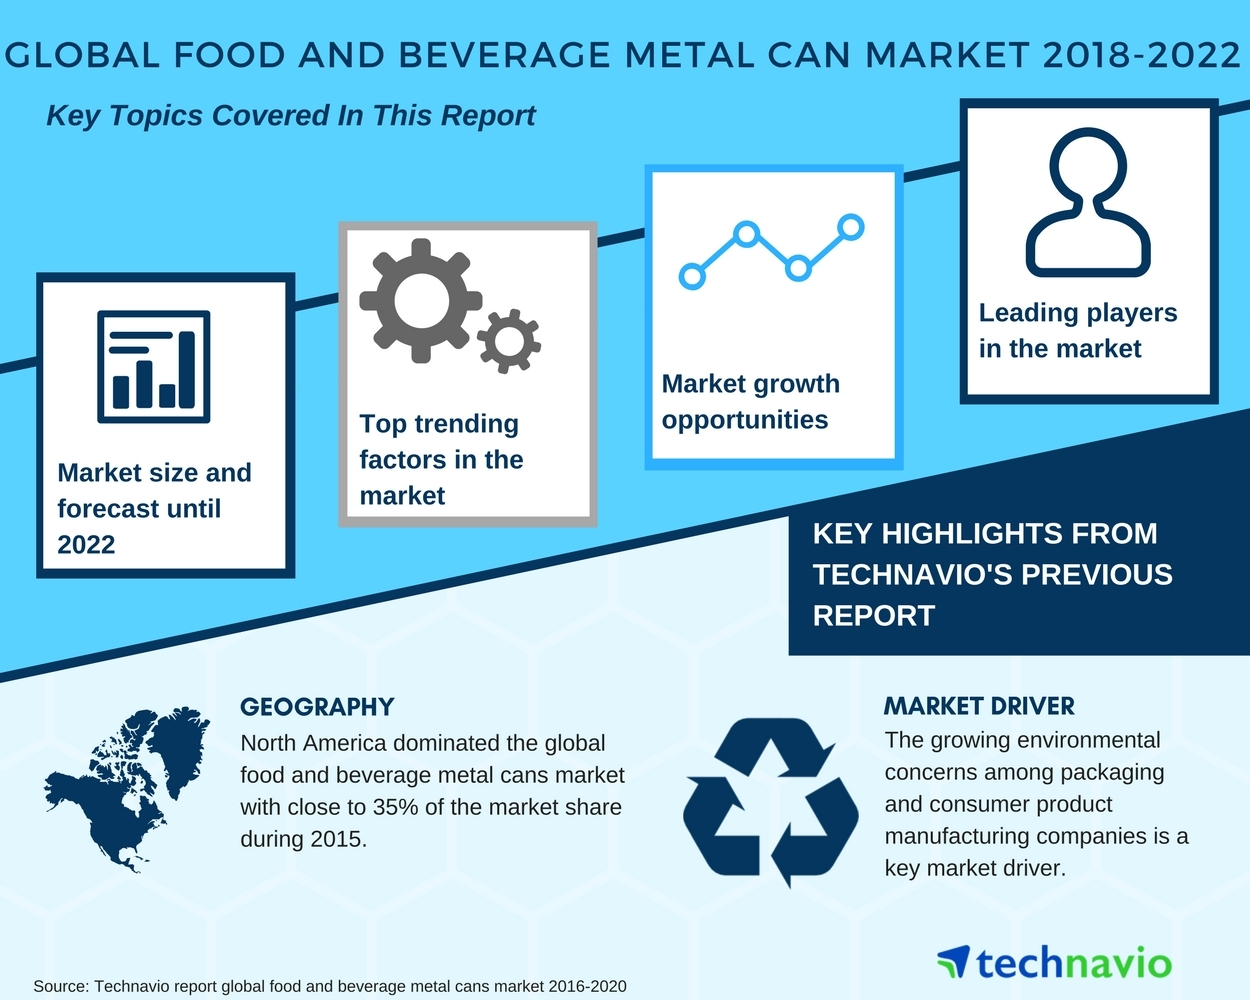 Global Food and Beverage Metal Can Market - Popularity of Recyclable